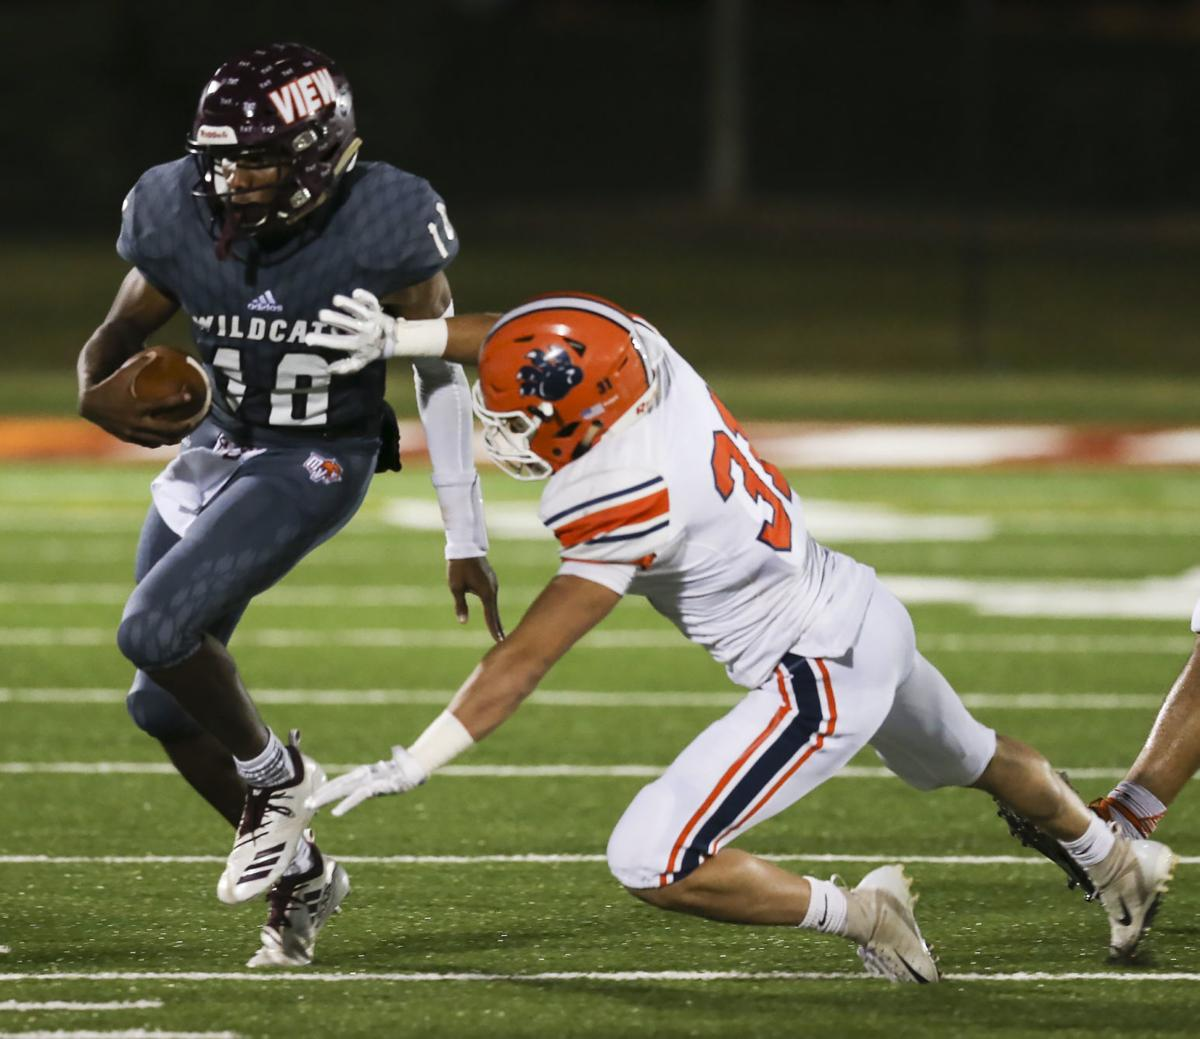 High School Football Td Return Sets North Stafford On Its Way In Details About 12 2 W Ground Romex Indoor Electrical Wire 1039 Ftall At Mountain View